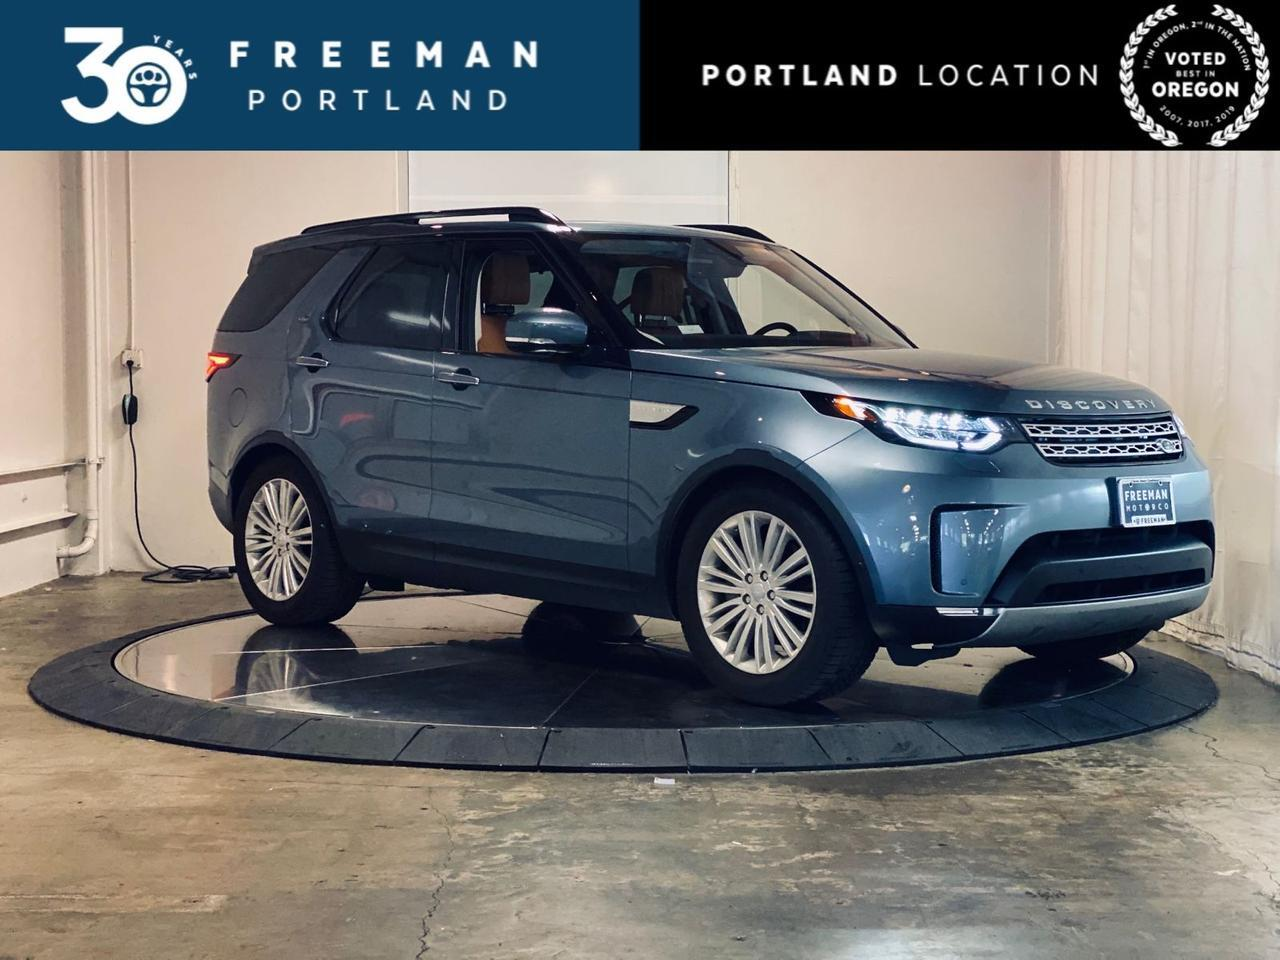 2018 Land Rover Discovery HSE Luxury 3rd Row Seat Blind Spot Assist Backup Cam